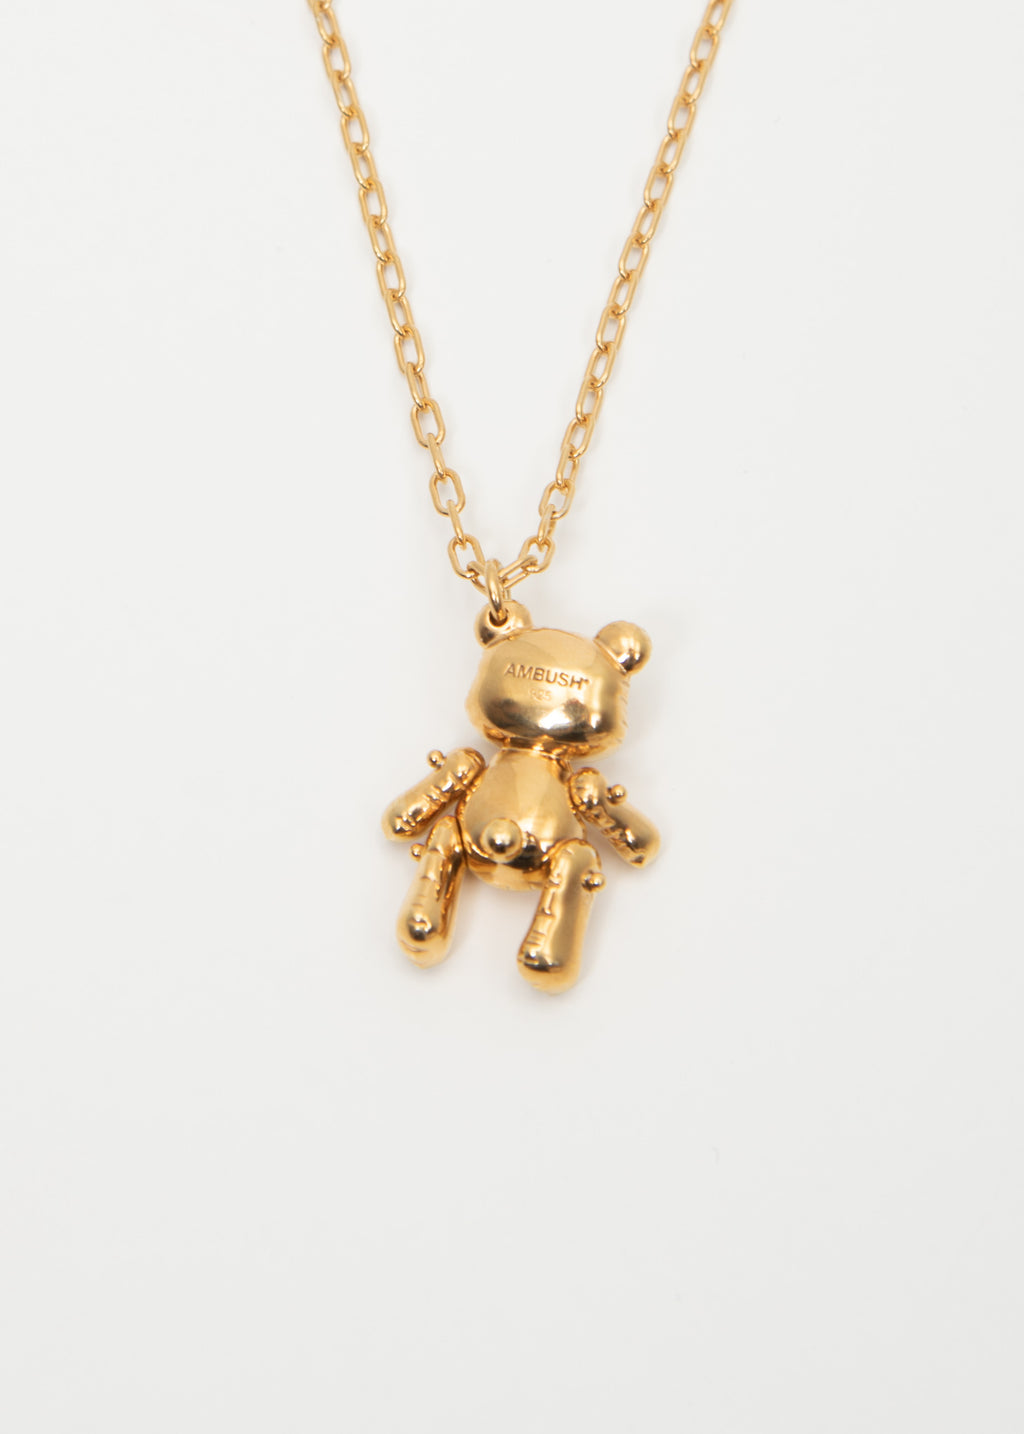 Gold Inflatable Teddy Bear Necklaces